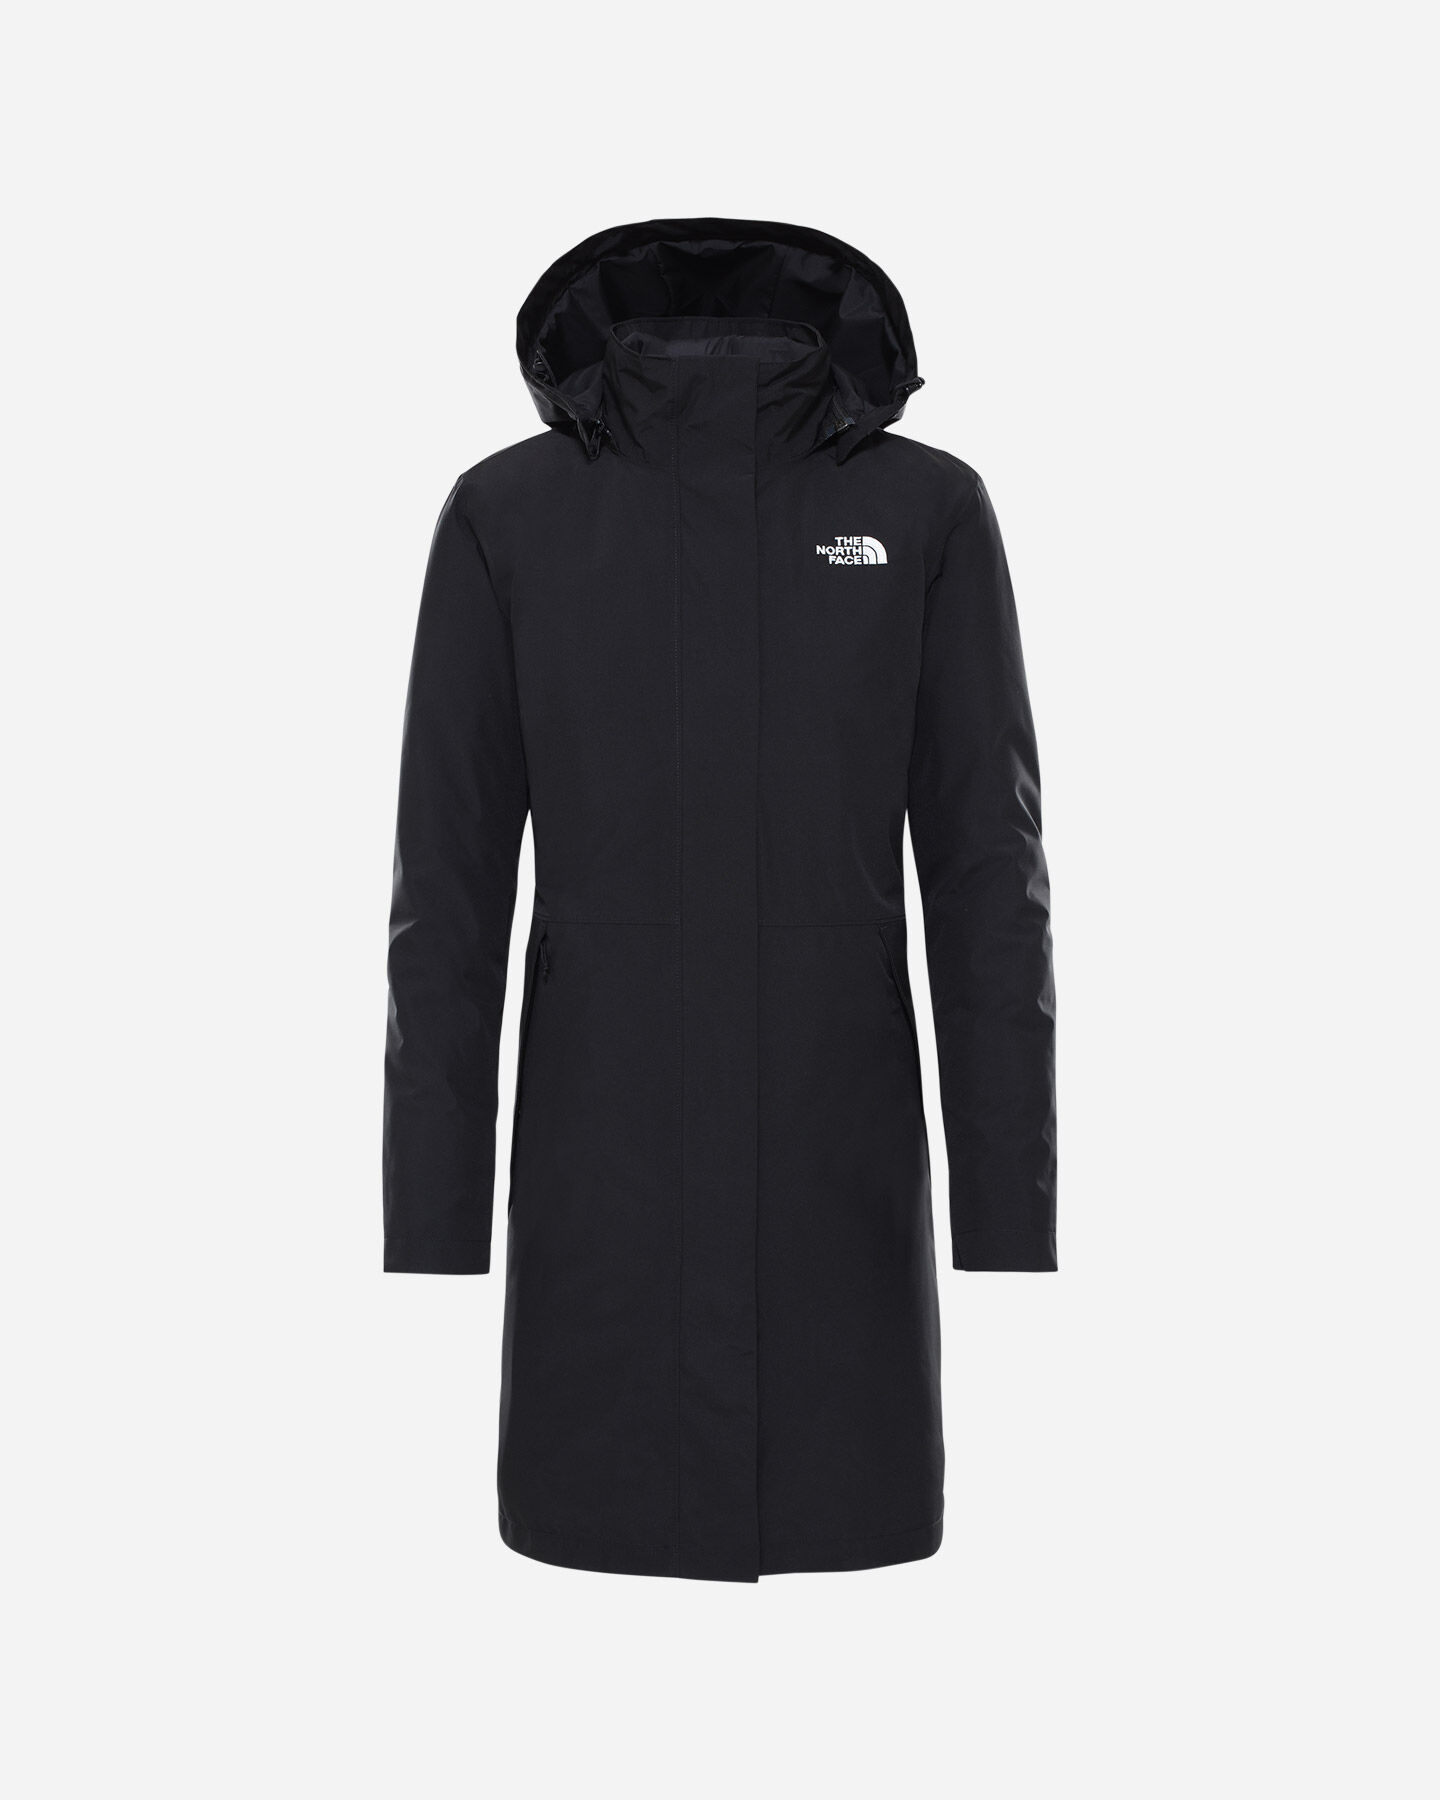 Giacca THE NORTH FACE SUZANNE TRICLIMATE W S5243553 scatto 1